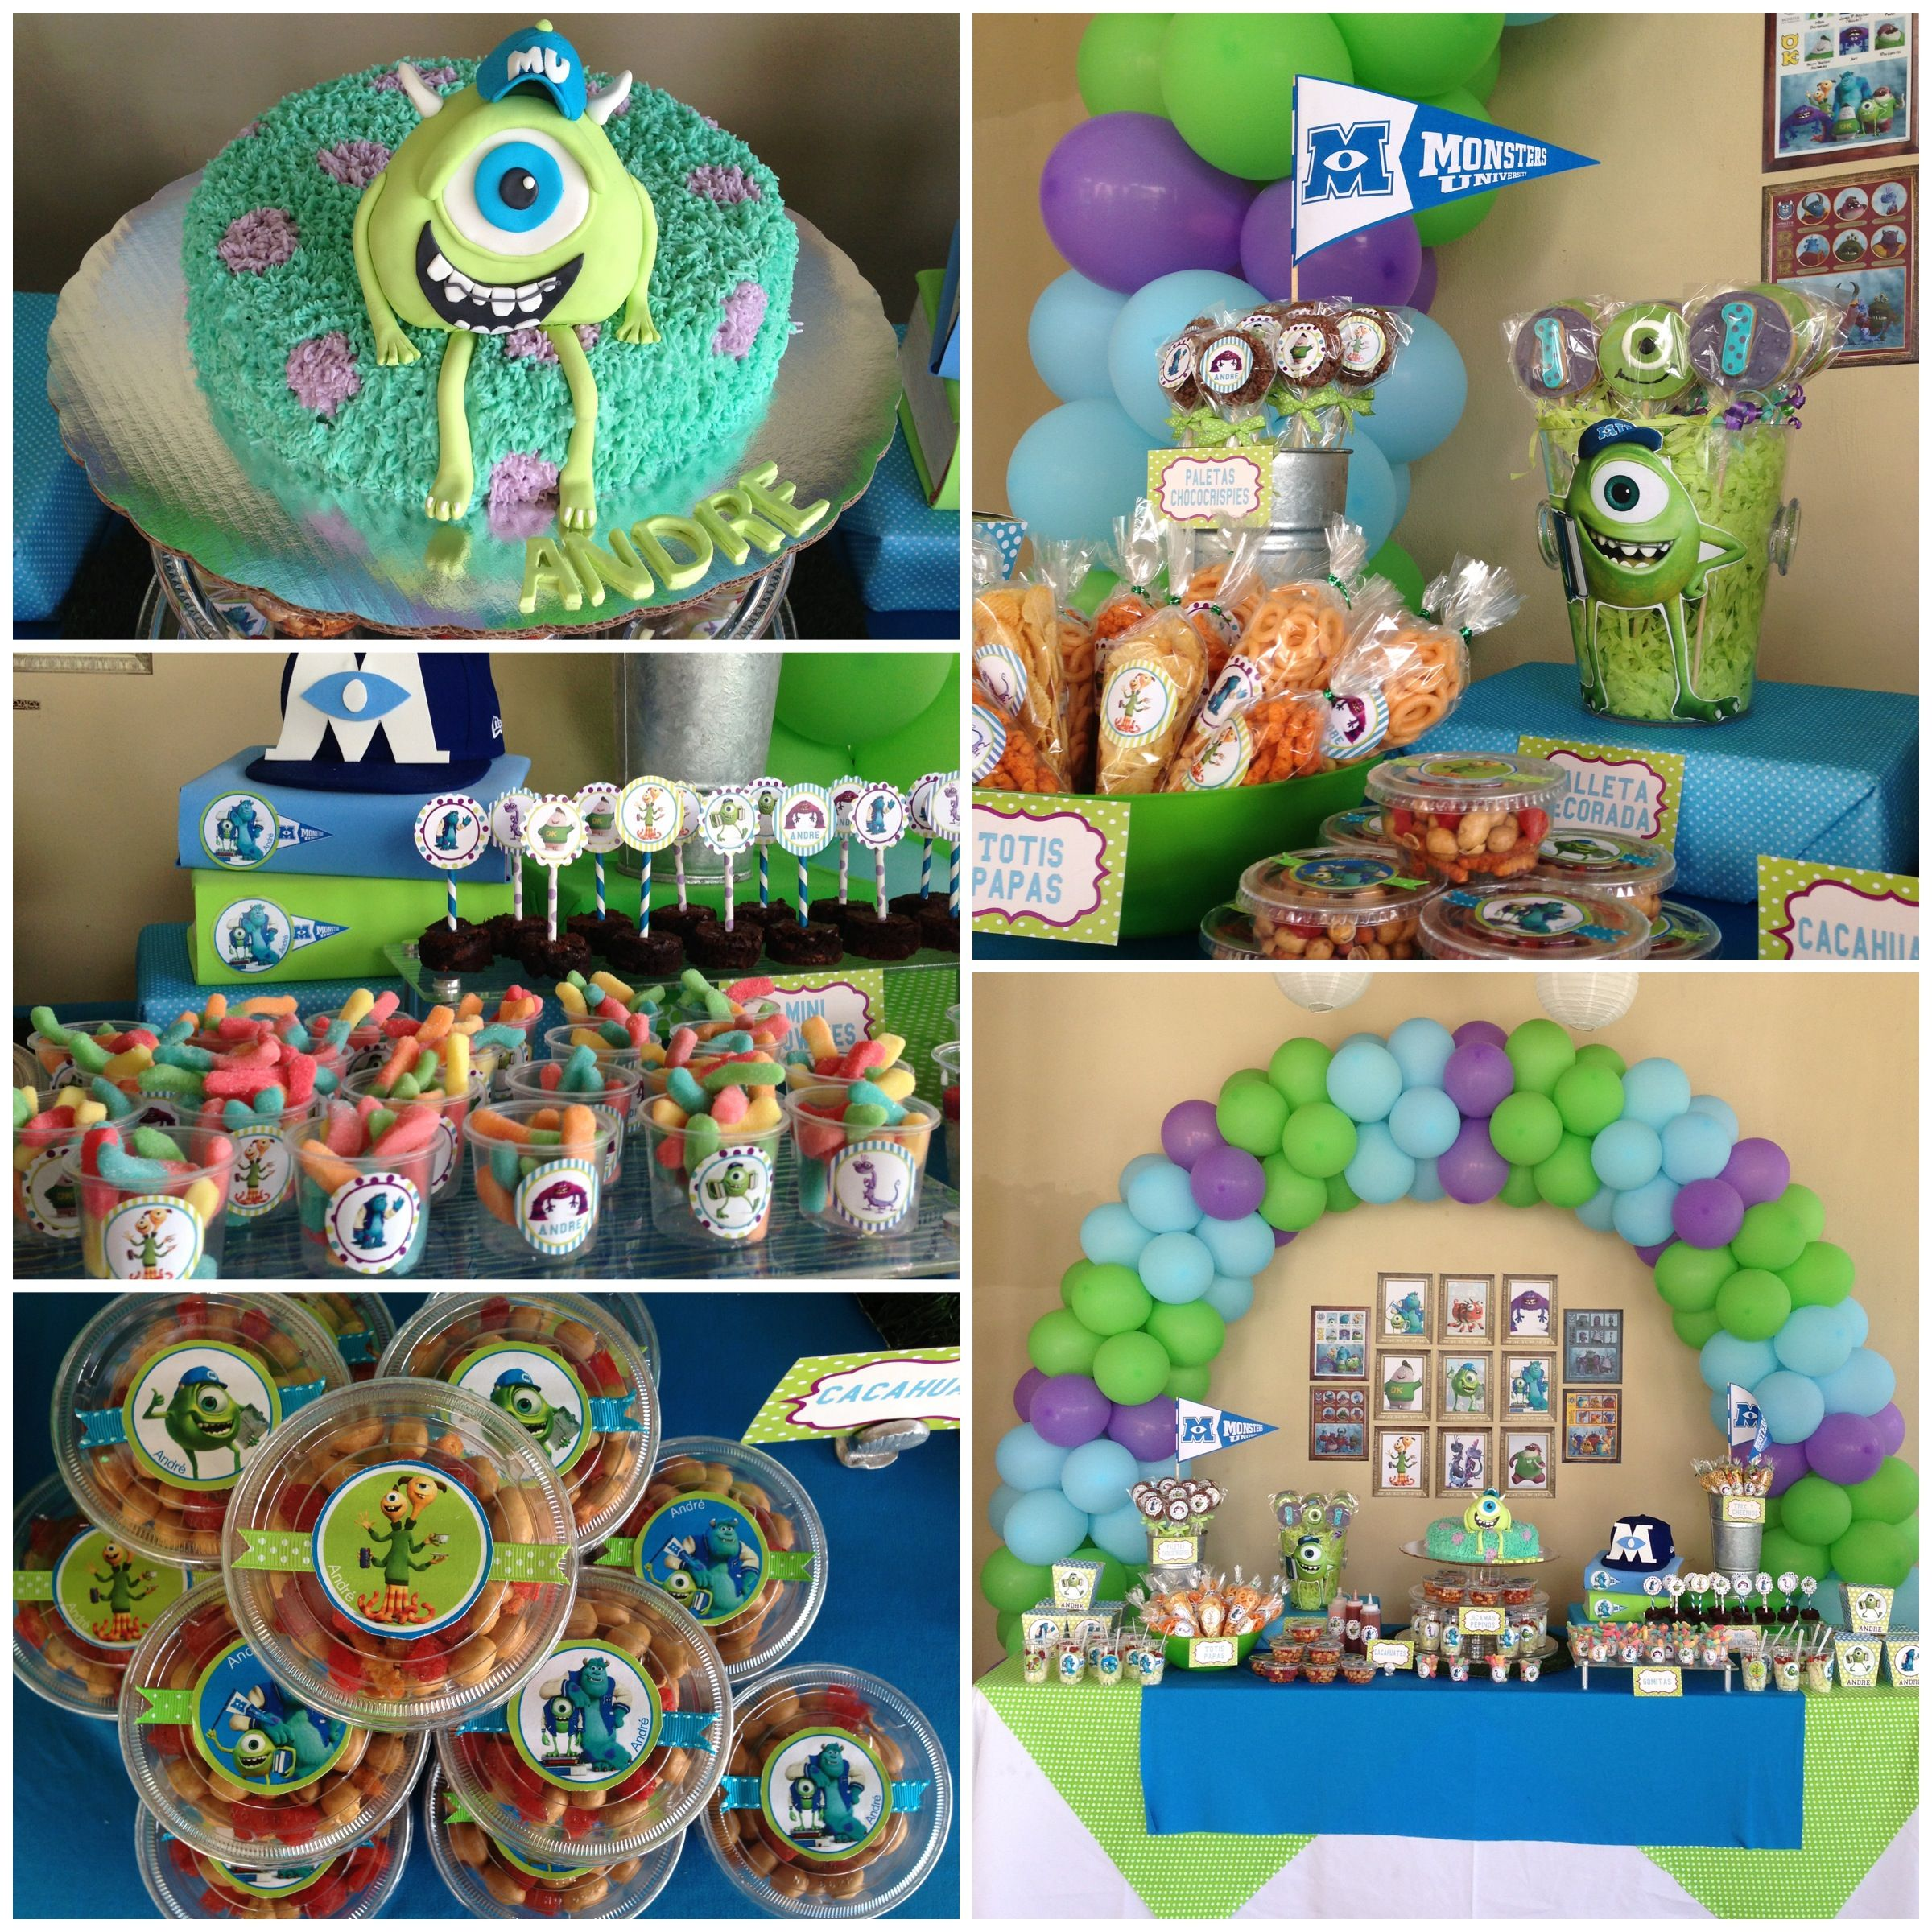 MoNstErs UniVeRsiTy paRty! Sweet table, decotation and cake ...